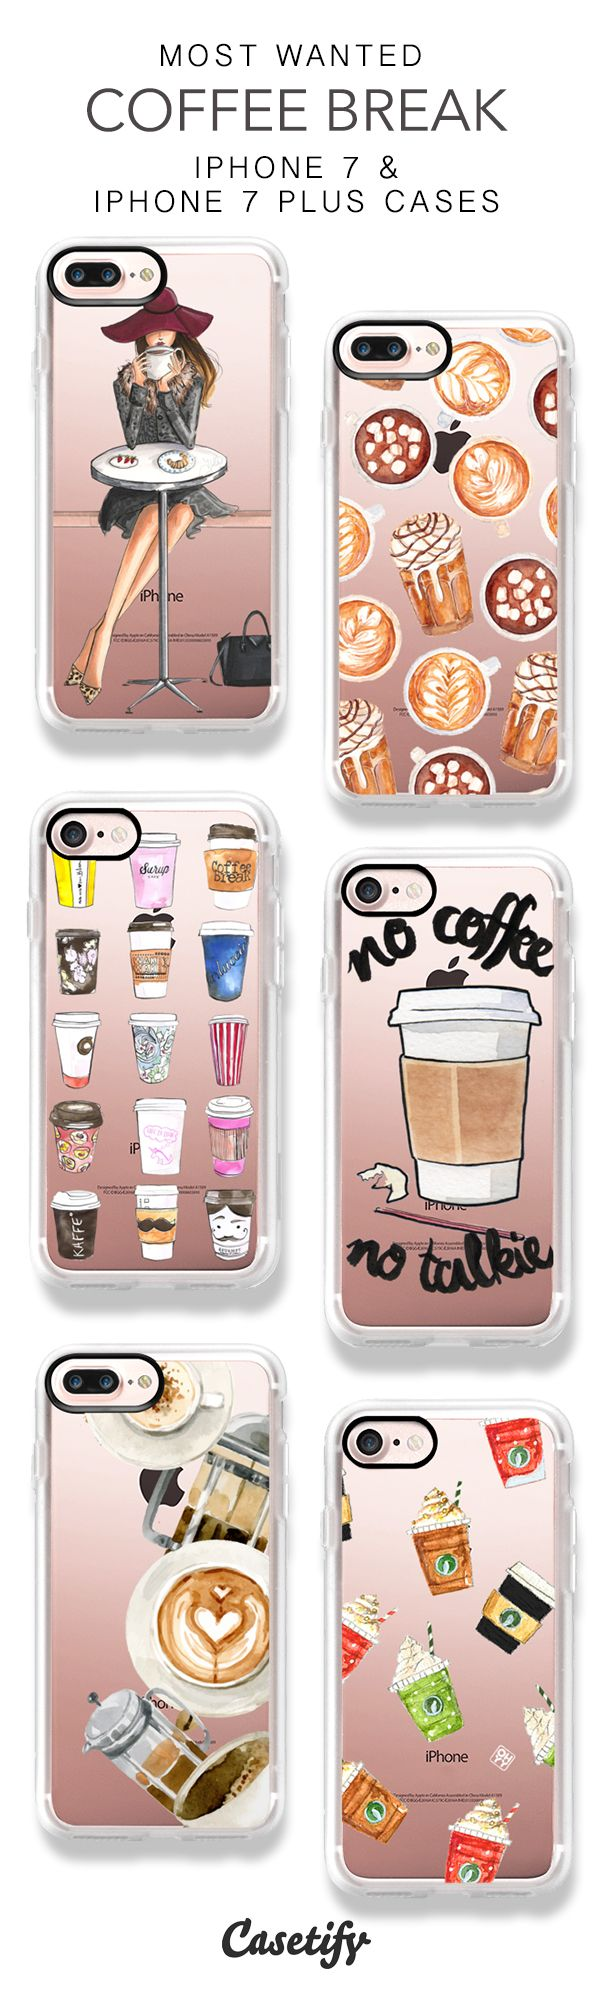 15 Most Popular Coffee iPhone 7 Cases and iPhone 7 Plus Cases. More pattern iPhone case here > https://www.casetify.com/collections/top_100_designs#/?vc=WeN6zv0D1E